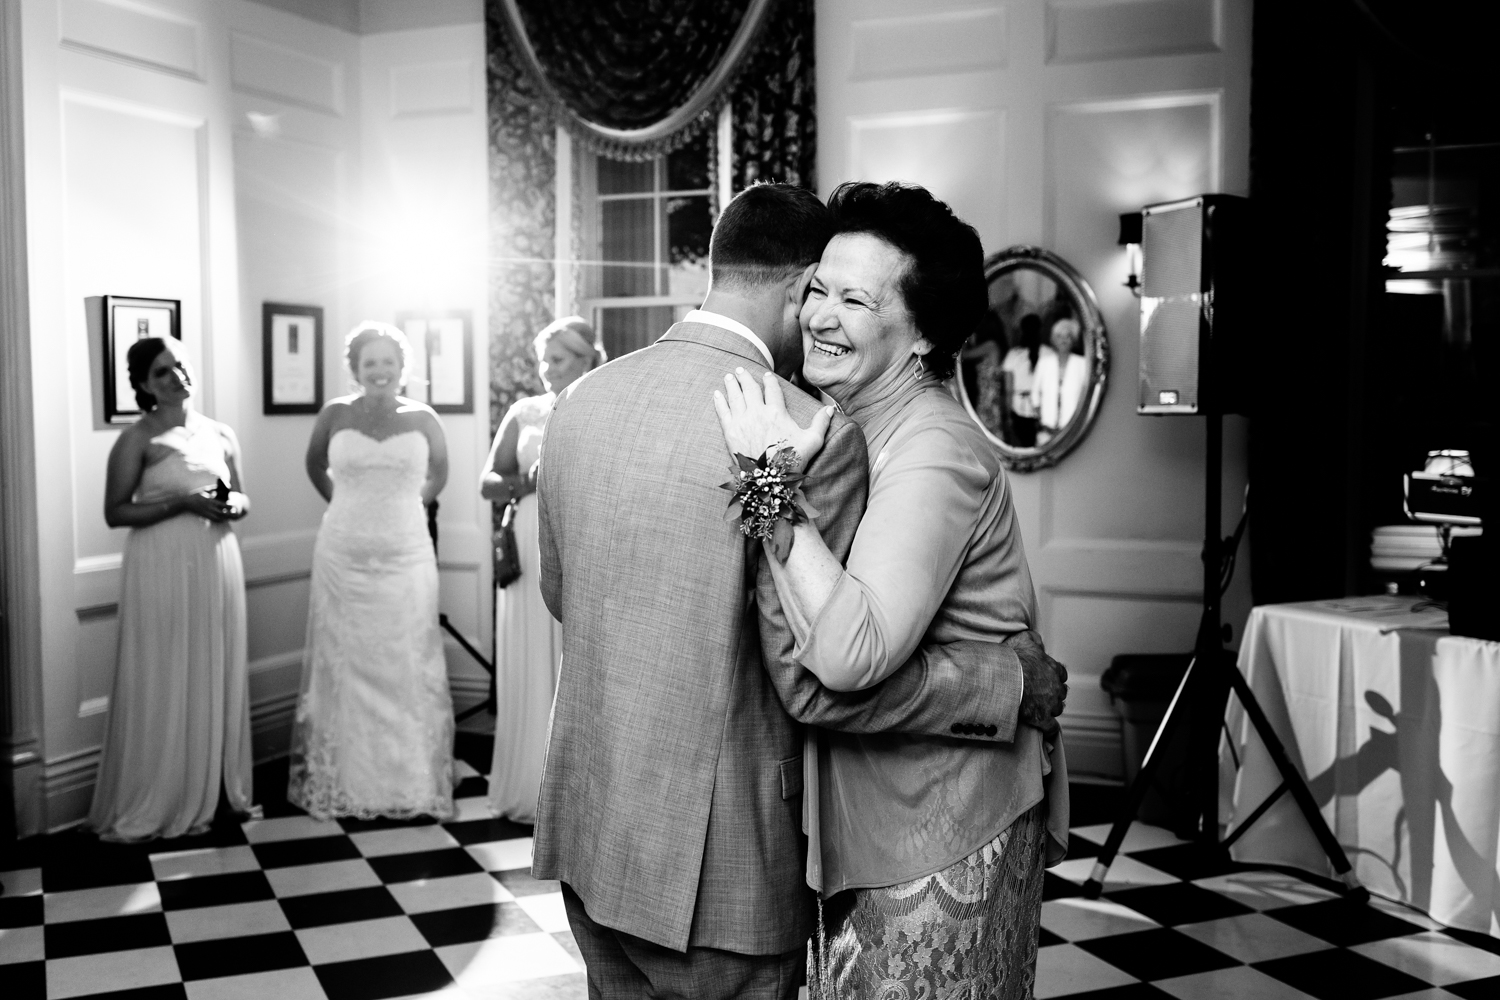 Black and white image of mother smiling during mother son dance at a wedding.